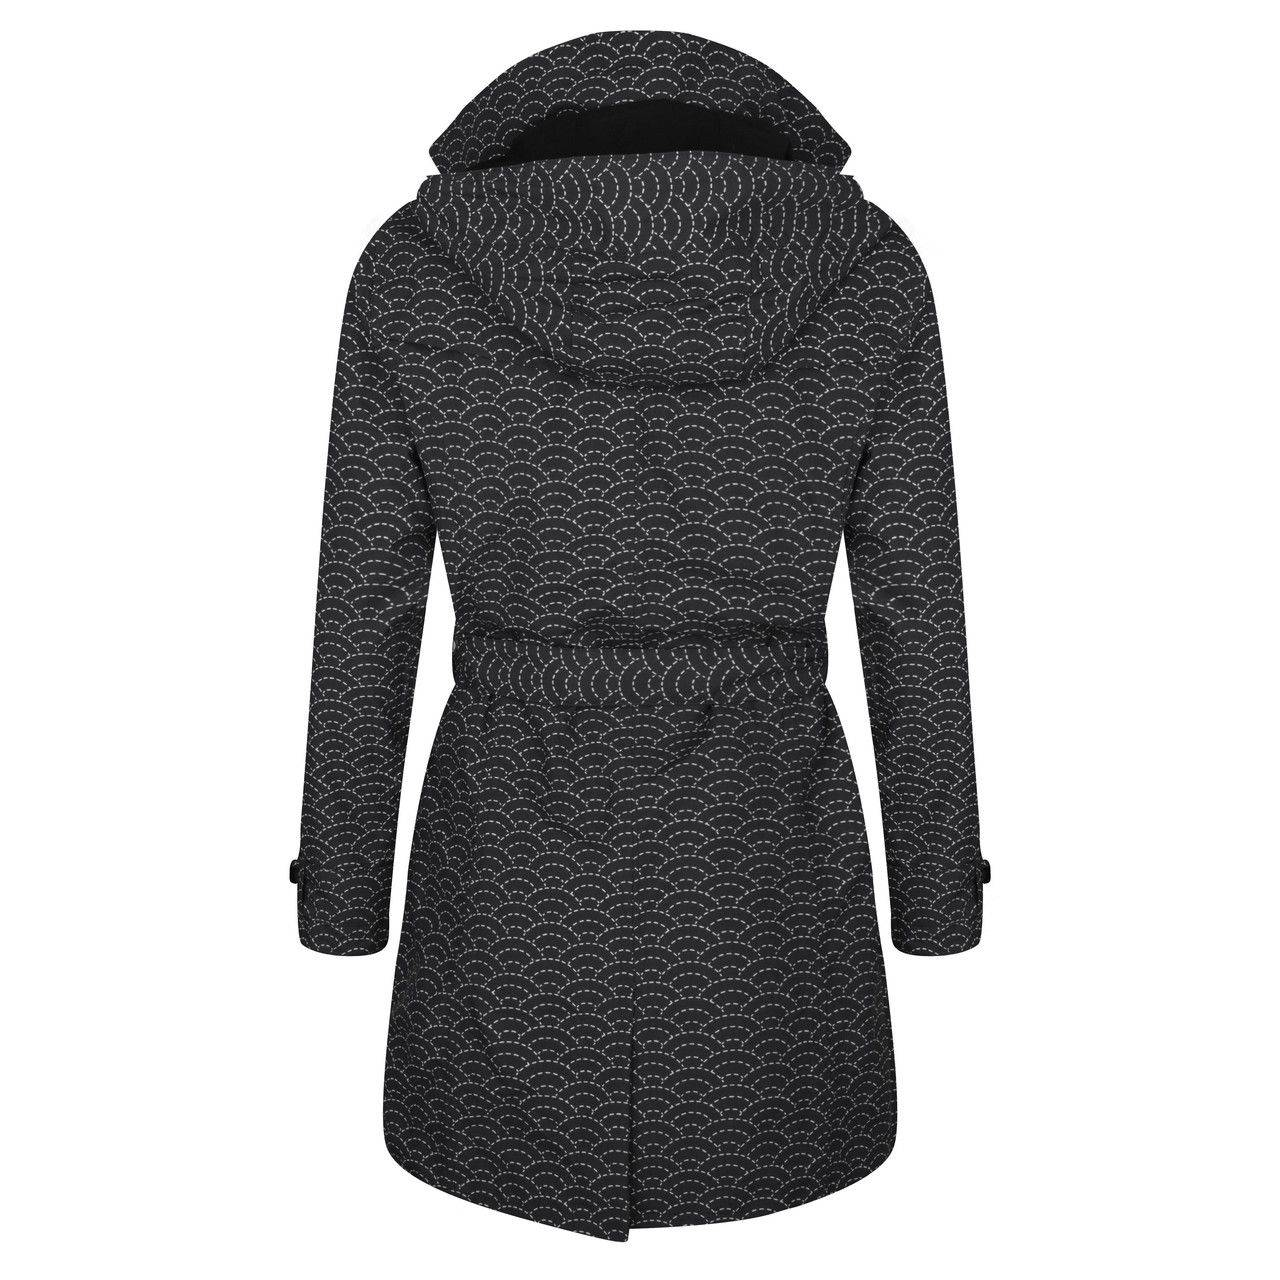 Happy Rainy Days Trench Coat, Black with White Pattern, Color: Black/White Pattern, Size: M image 2